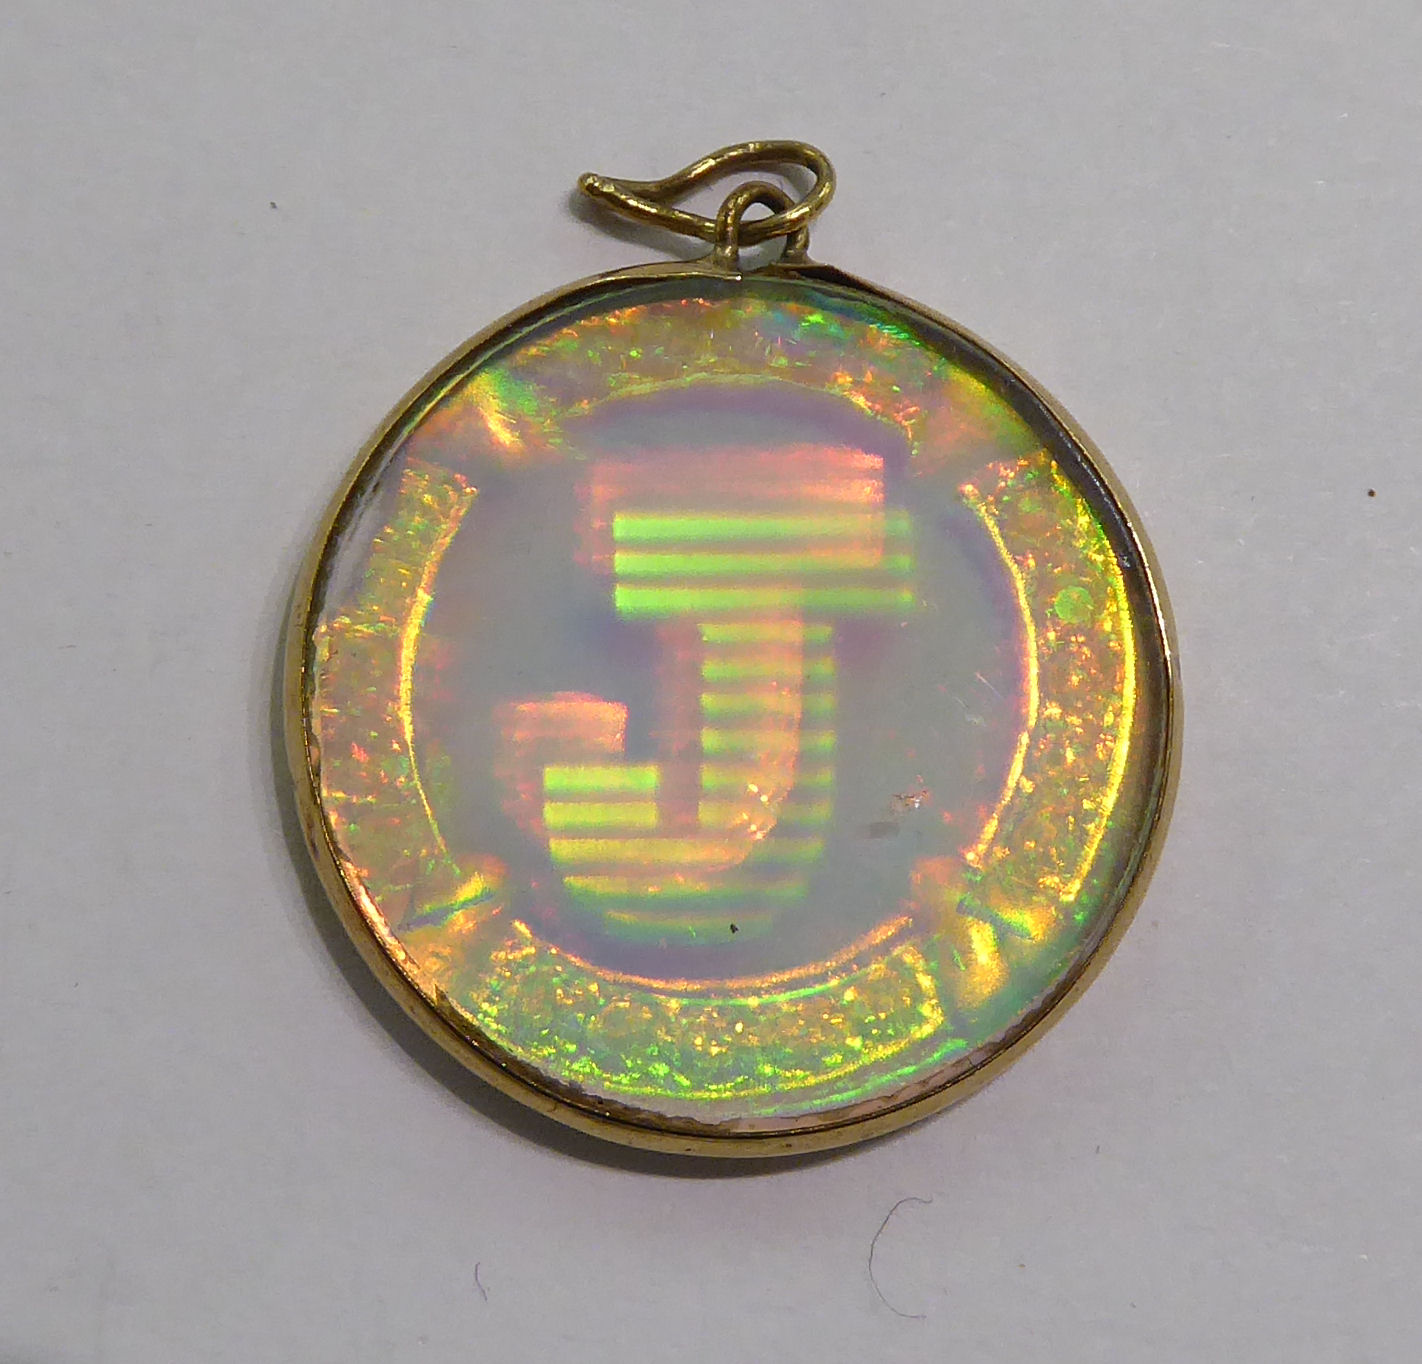 Lot 81 - A gold coloured metal hologram pendant with the initial 'J' 11